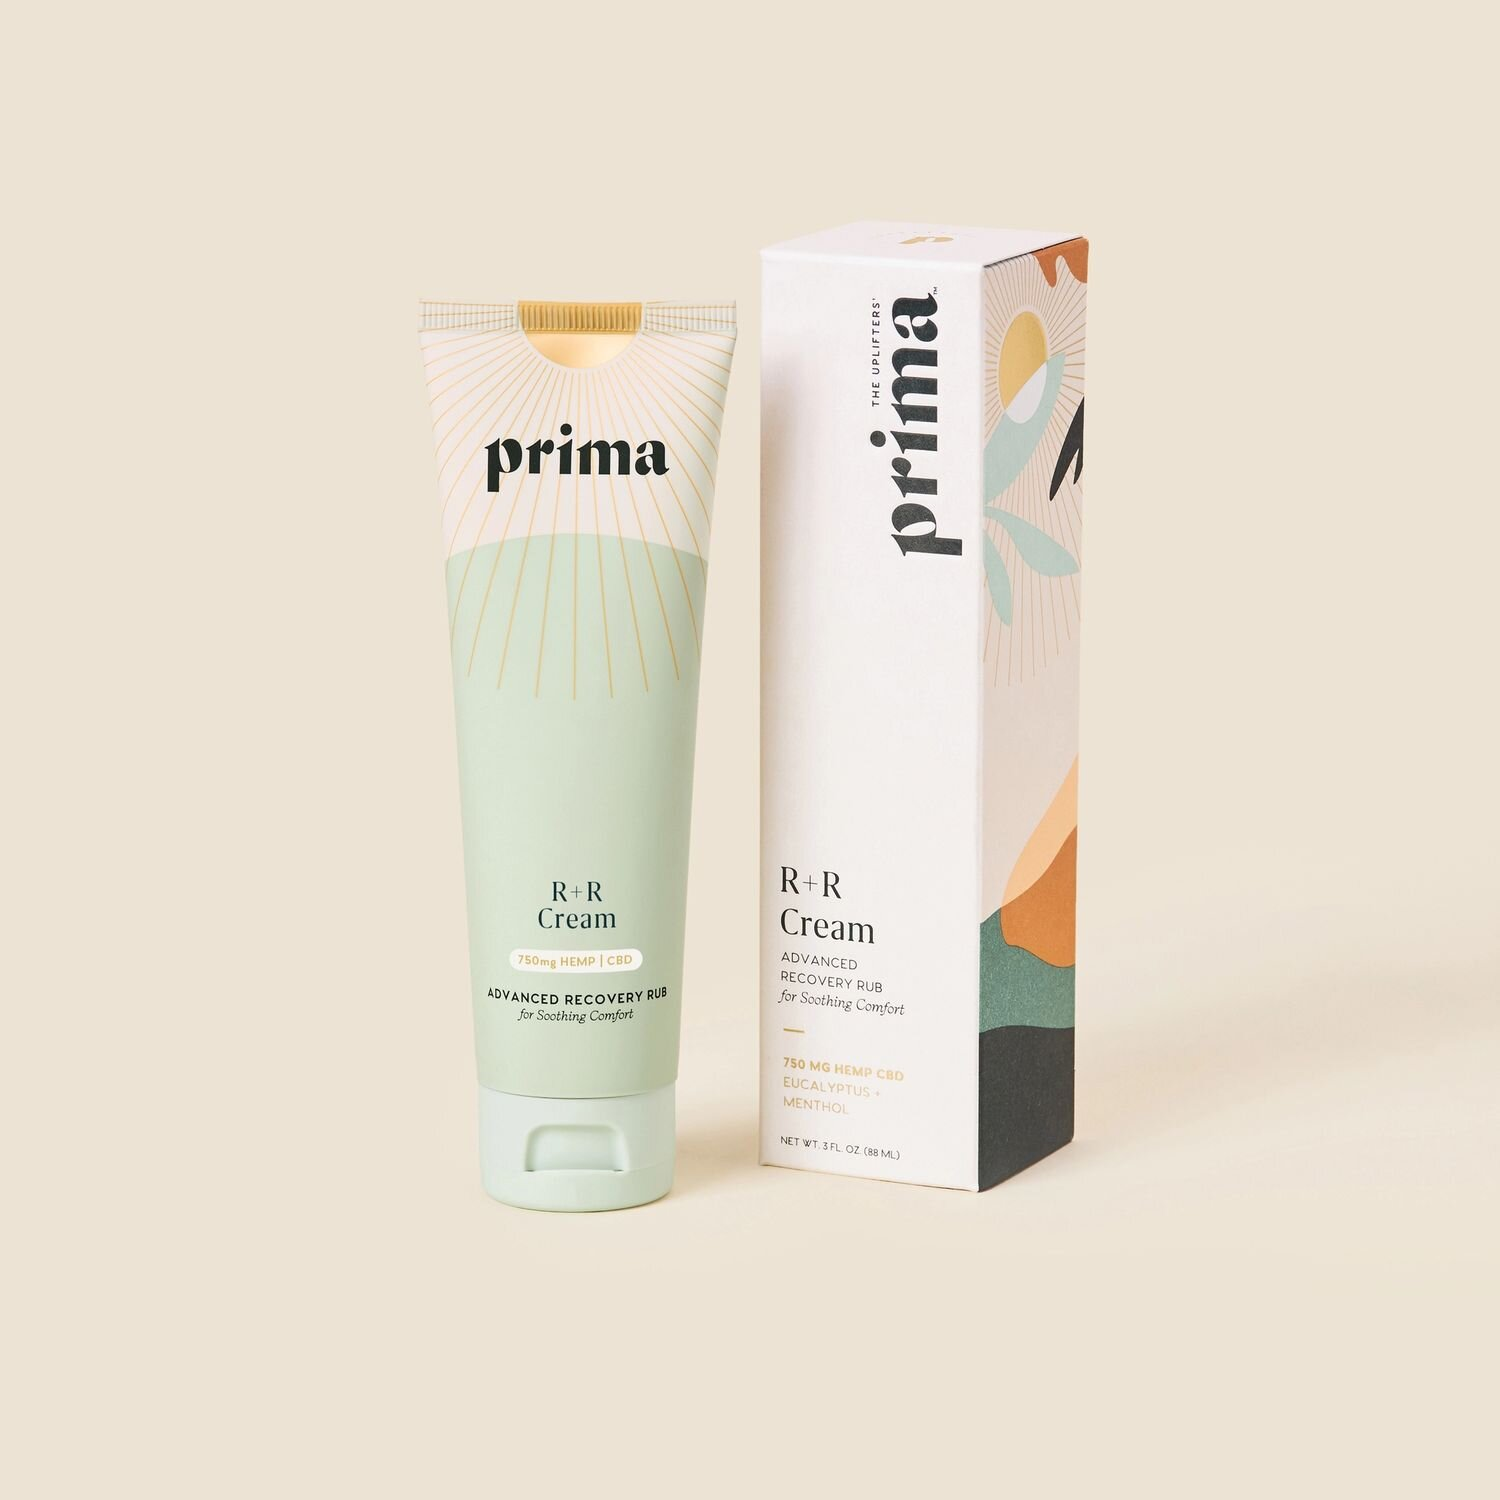 Prima R & R Advanced Recovery Cream  - A whole plant hemp extract with naturally occurring CBD and a soothing botanical blend to encourage whole-body recovery.  Use code GLOWGIRL for 20% off.